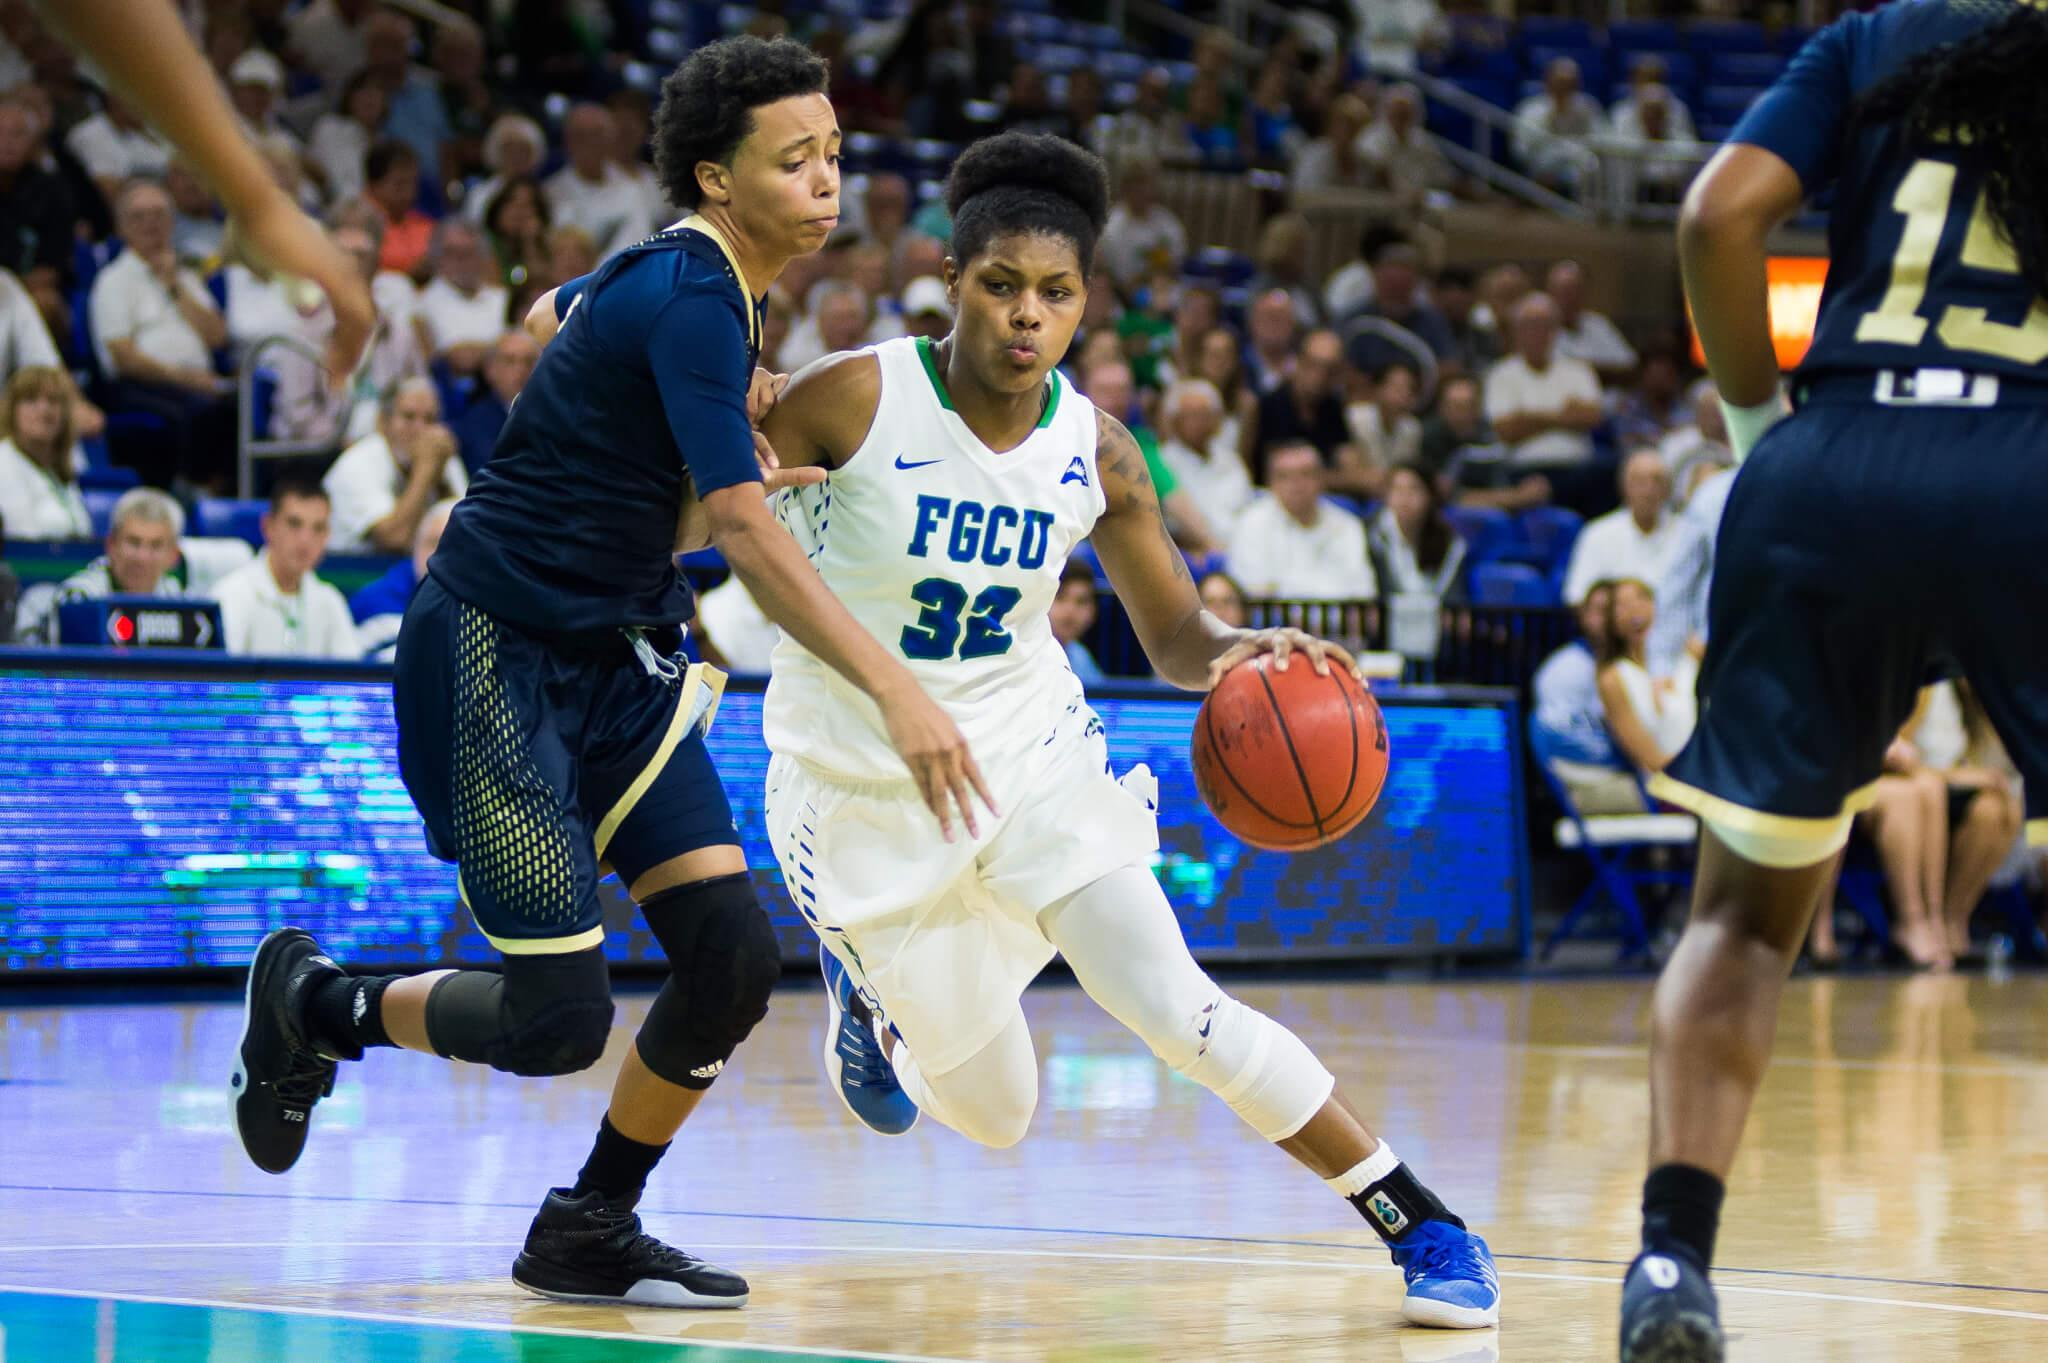 FGCU women's basketball defeats FIU 89-42 in its first home game of the season